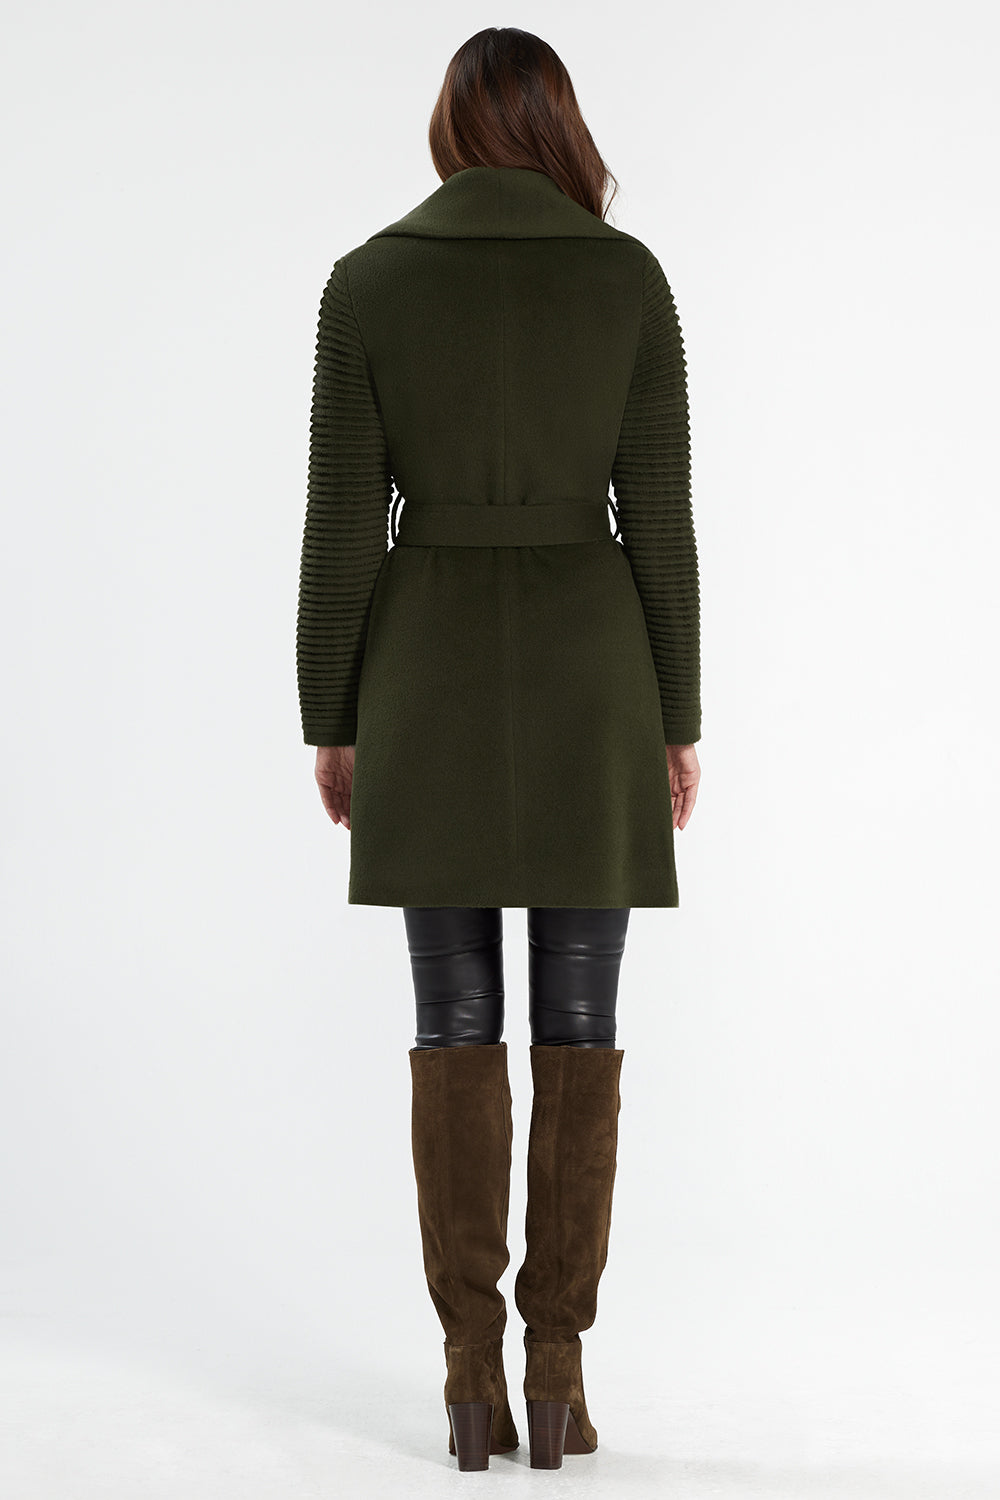 Sentaler Mid Length Shawl Collar Wrap Coat with Ribbed Sleeves featured in Baby Alpaca and available in Olive. Seen from back.